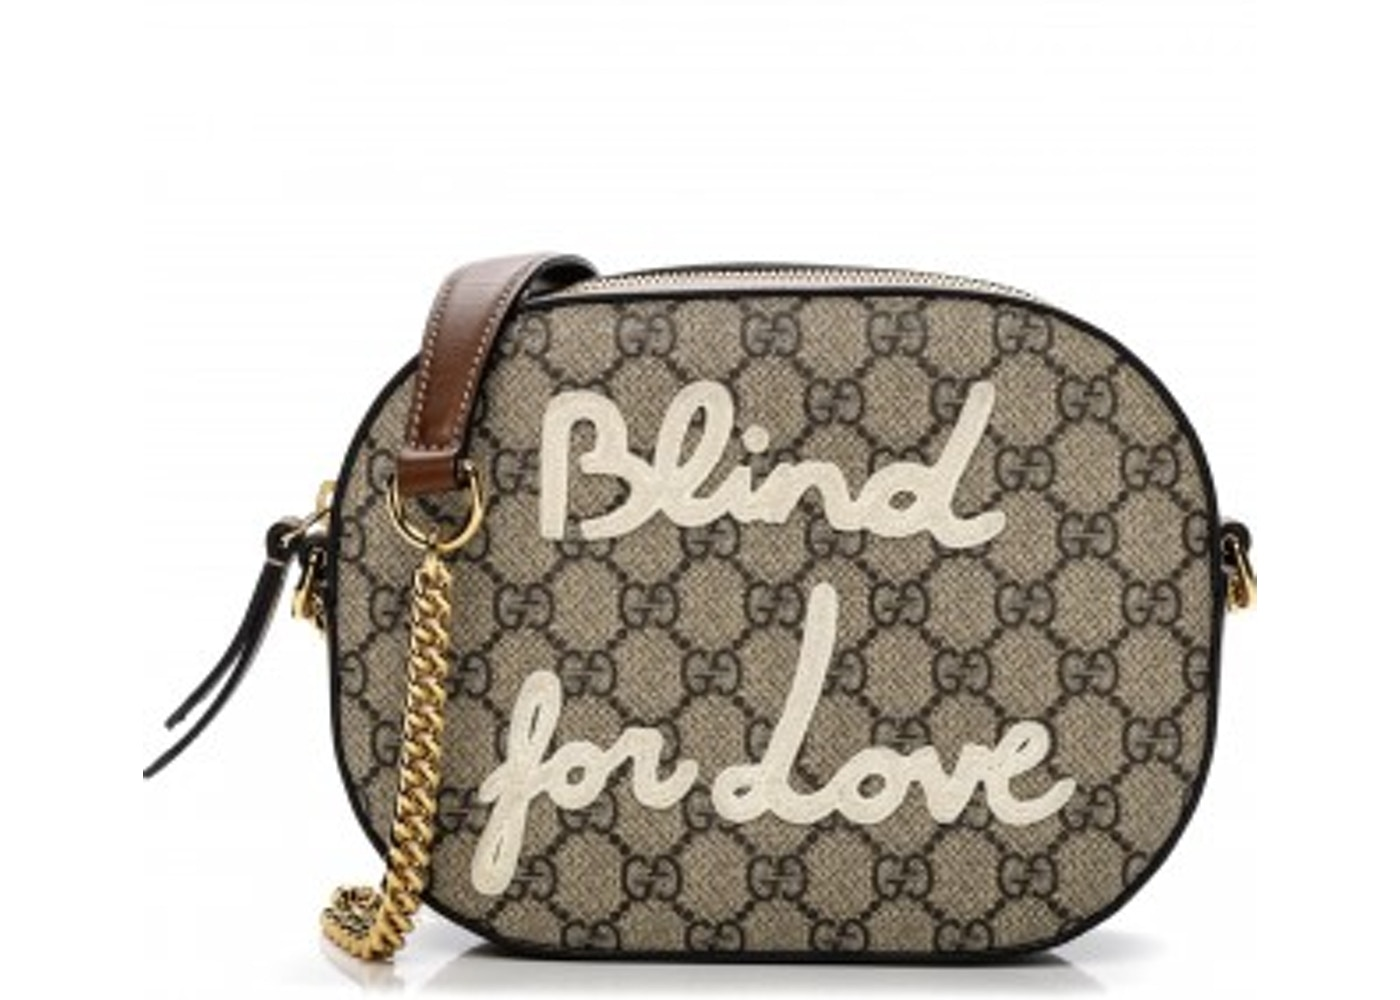 2a05e0db5f6 Gucci Chain Crossbody GG Supreme Monogram Embroidered Blind ...